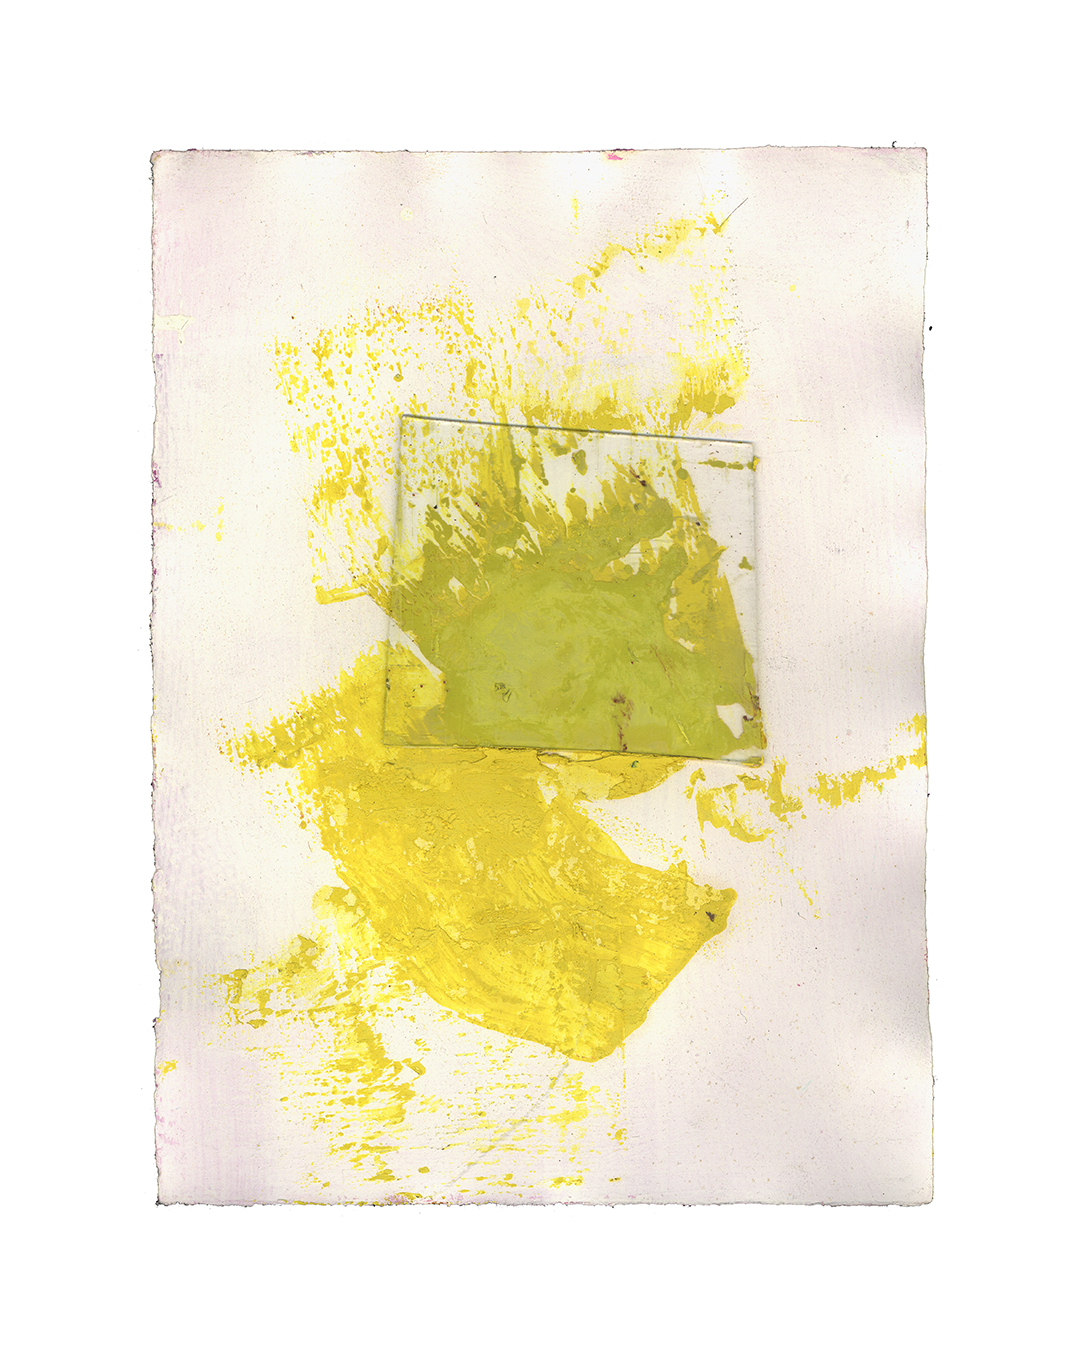 Piet Dieleman, untitled, 2020, painting, glass, oil paint, acrylic paint on paper, 390 x 285 mm, €930